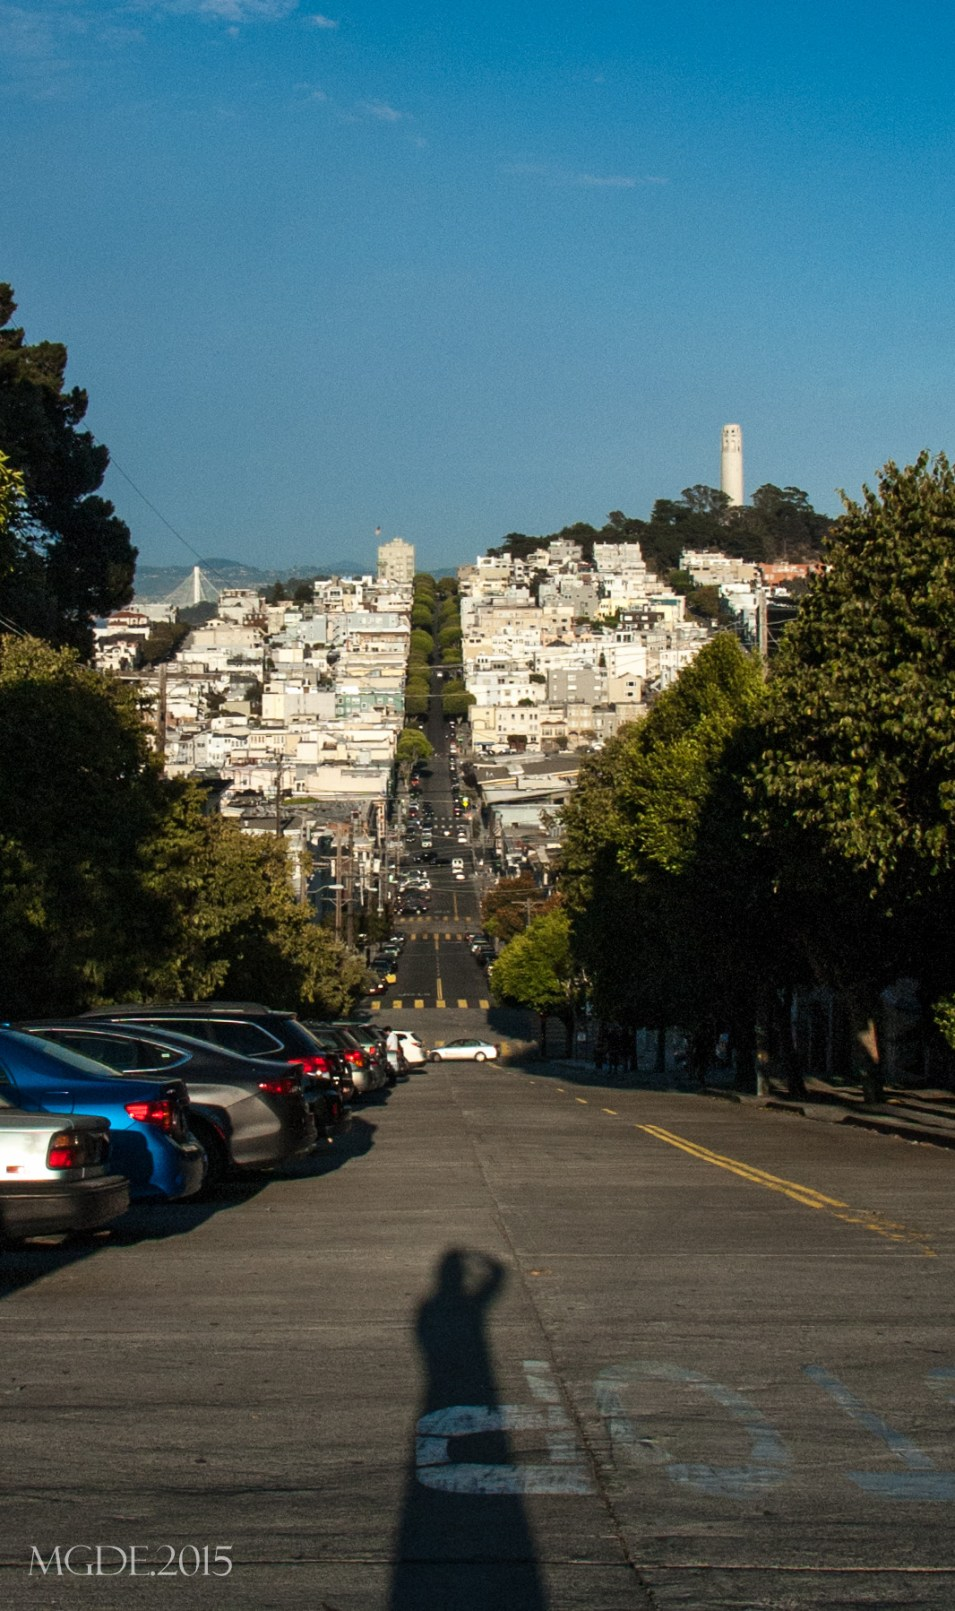 View of the Coit Tower from the straight section of Lombard Street